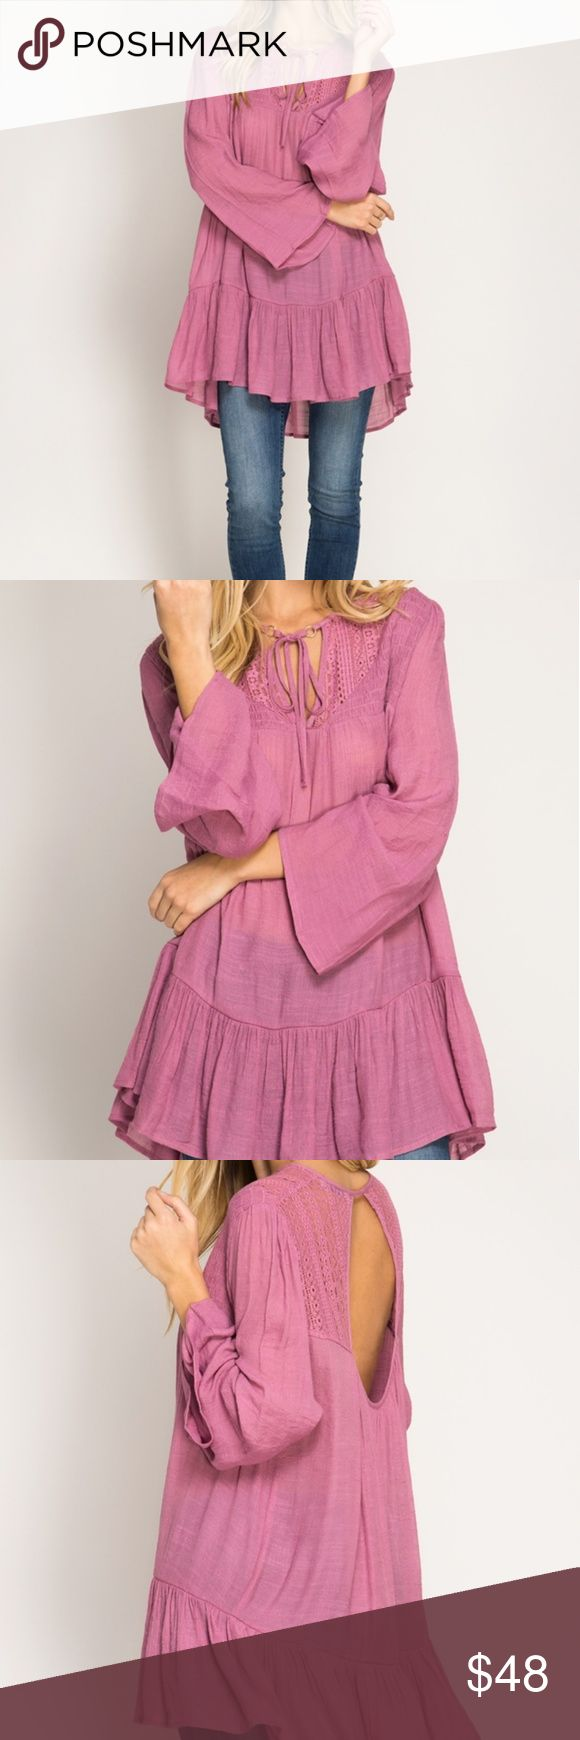 Long Bell sleeve tunic She and sky Mauve Pink long sleeve tunic top with smocking and lace yoke. Available in 3 sizes.  70%COTTON,  30%POLYESTER  WOVEN DRESS? She and Sky Tops Tunics